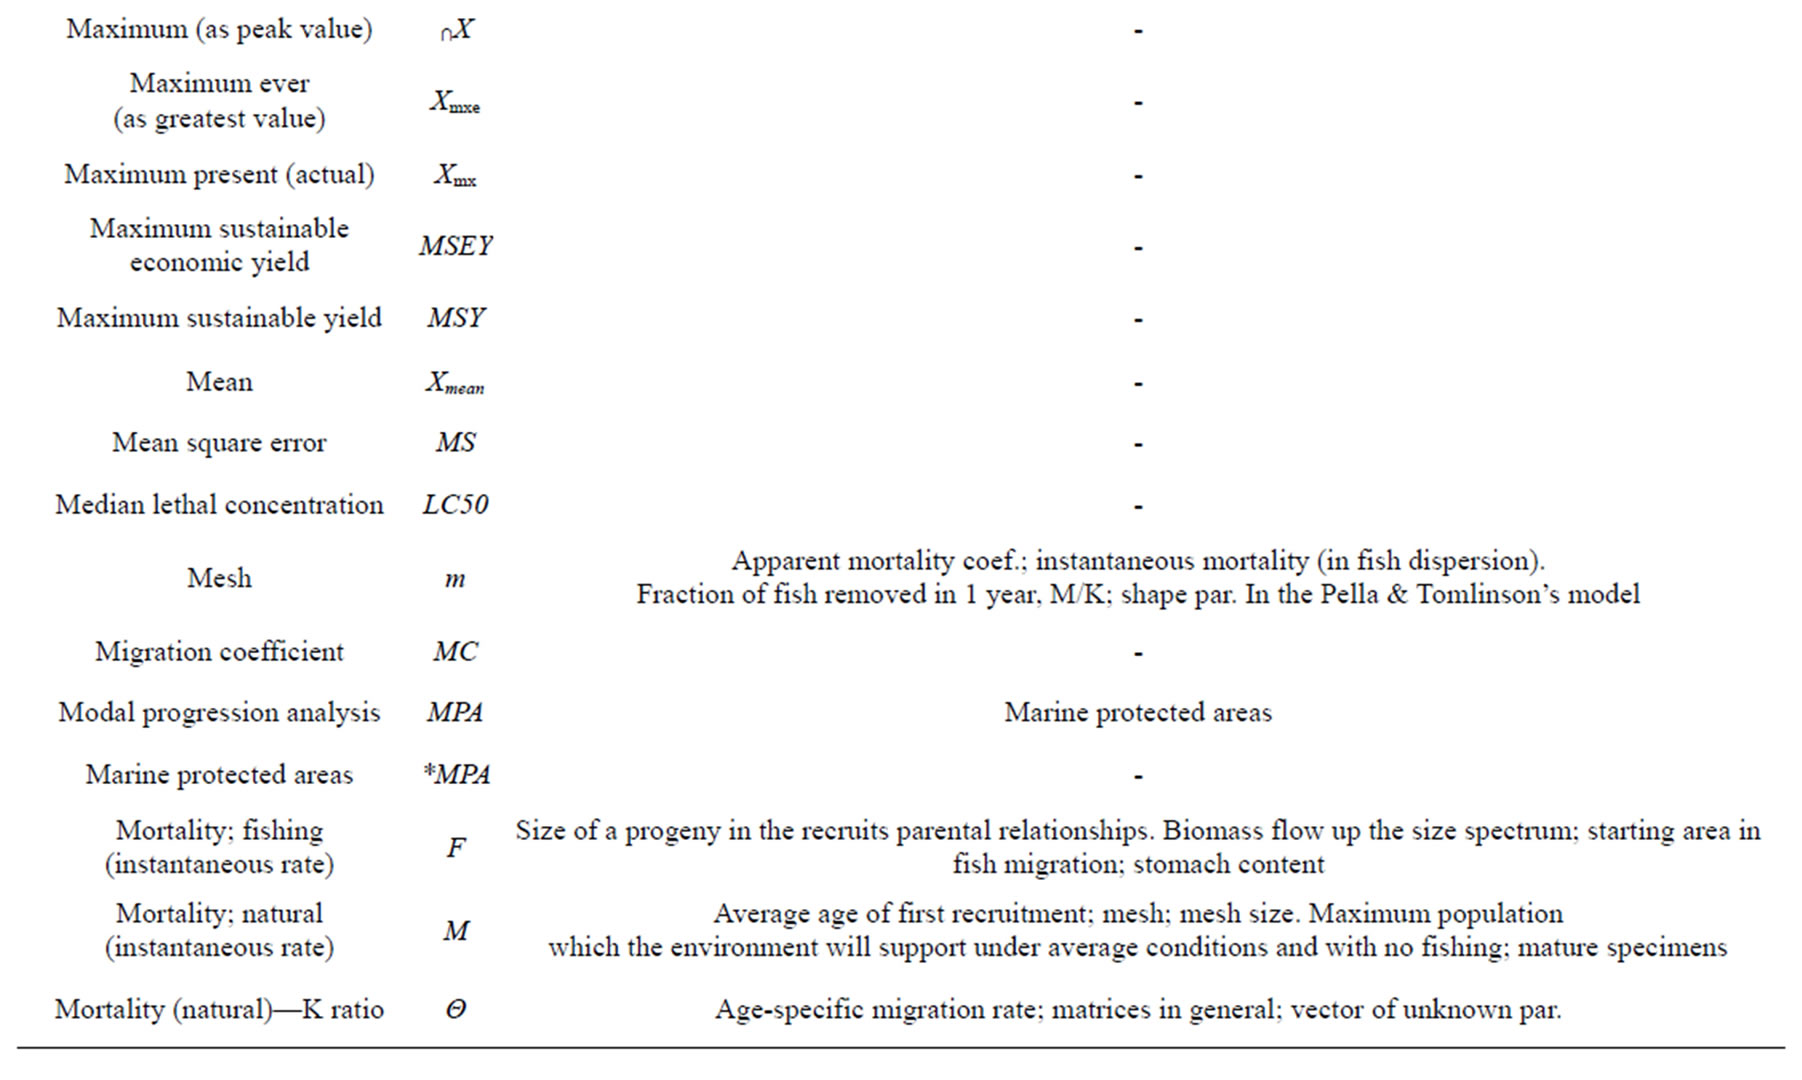 Desirability Of A Standard Notation For Fisheries Assessment